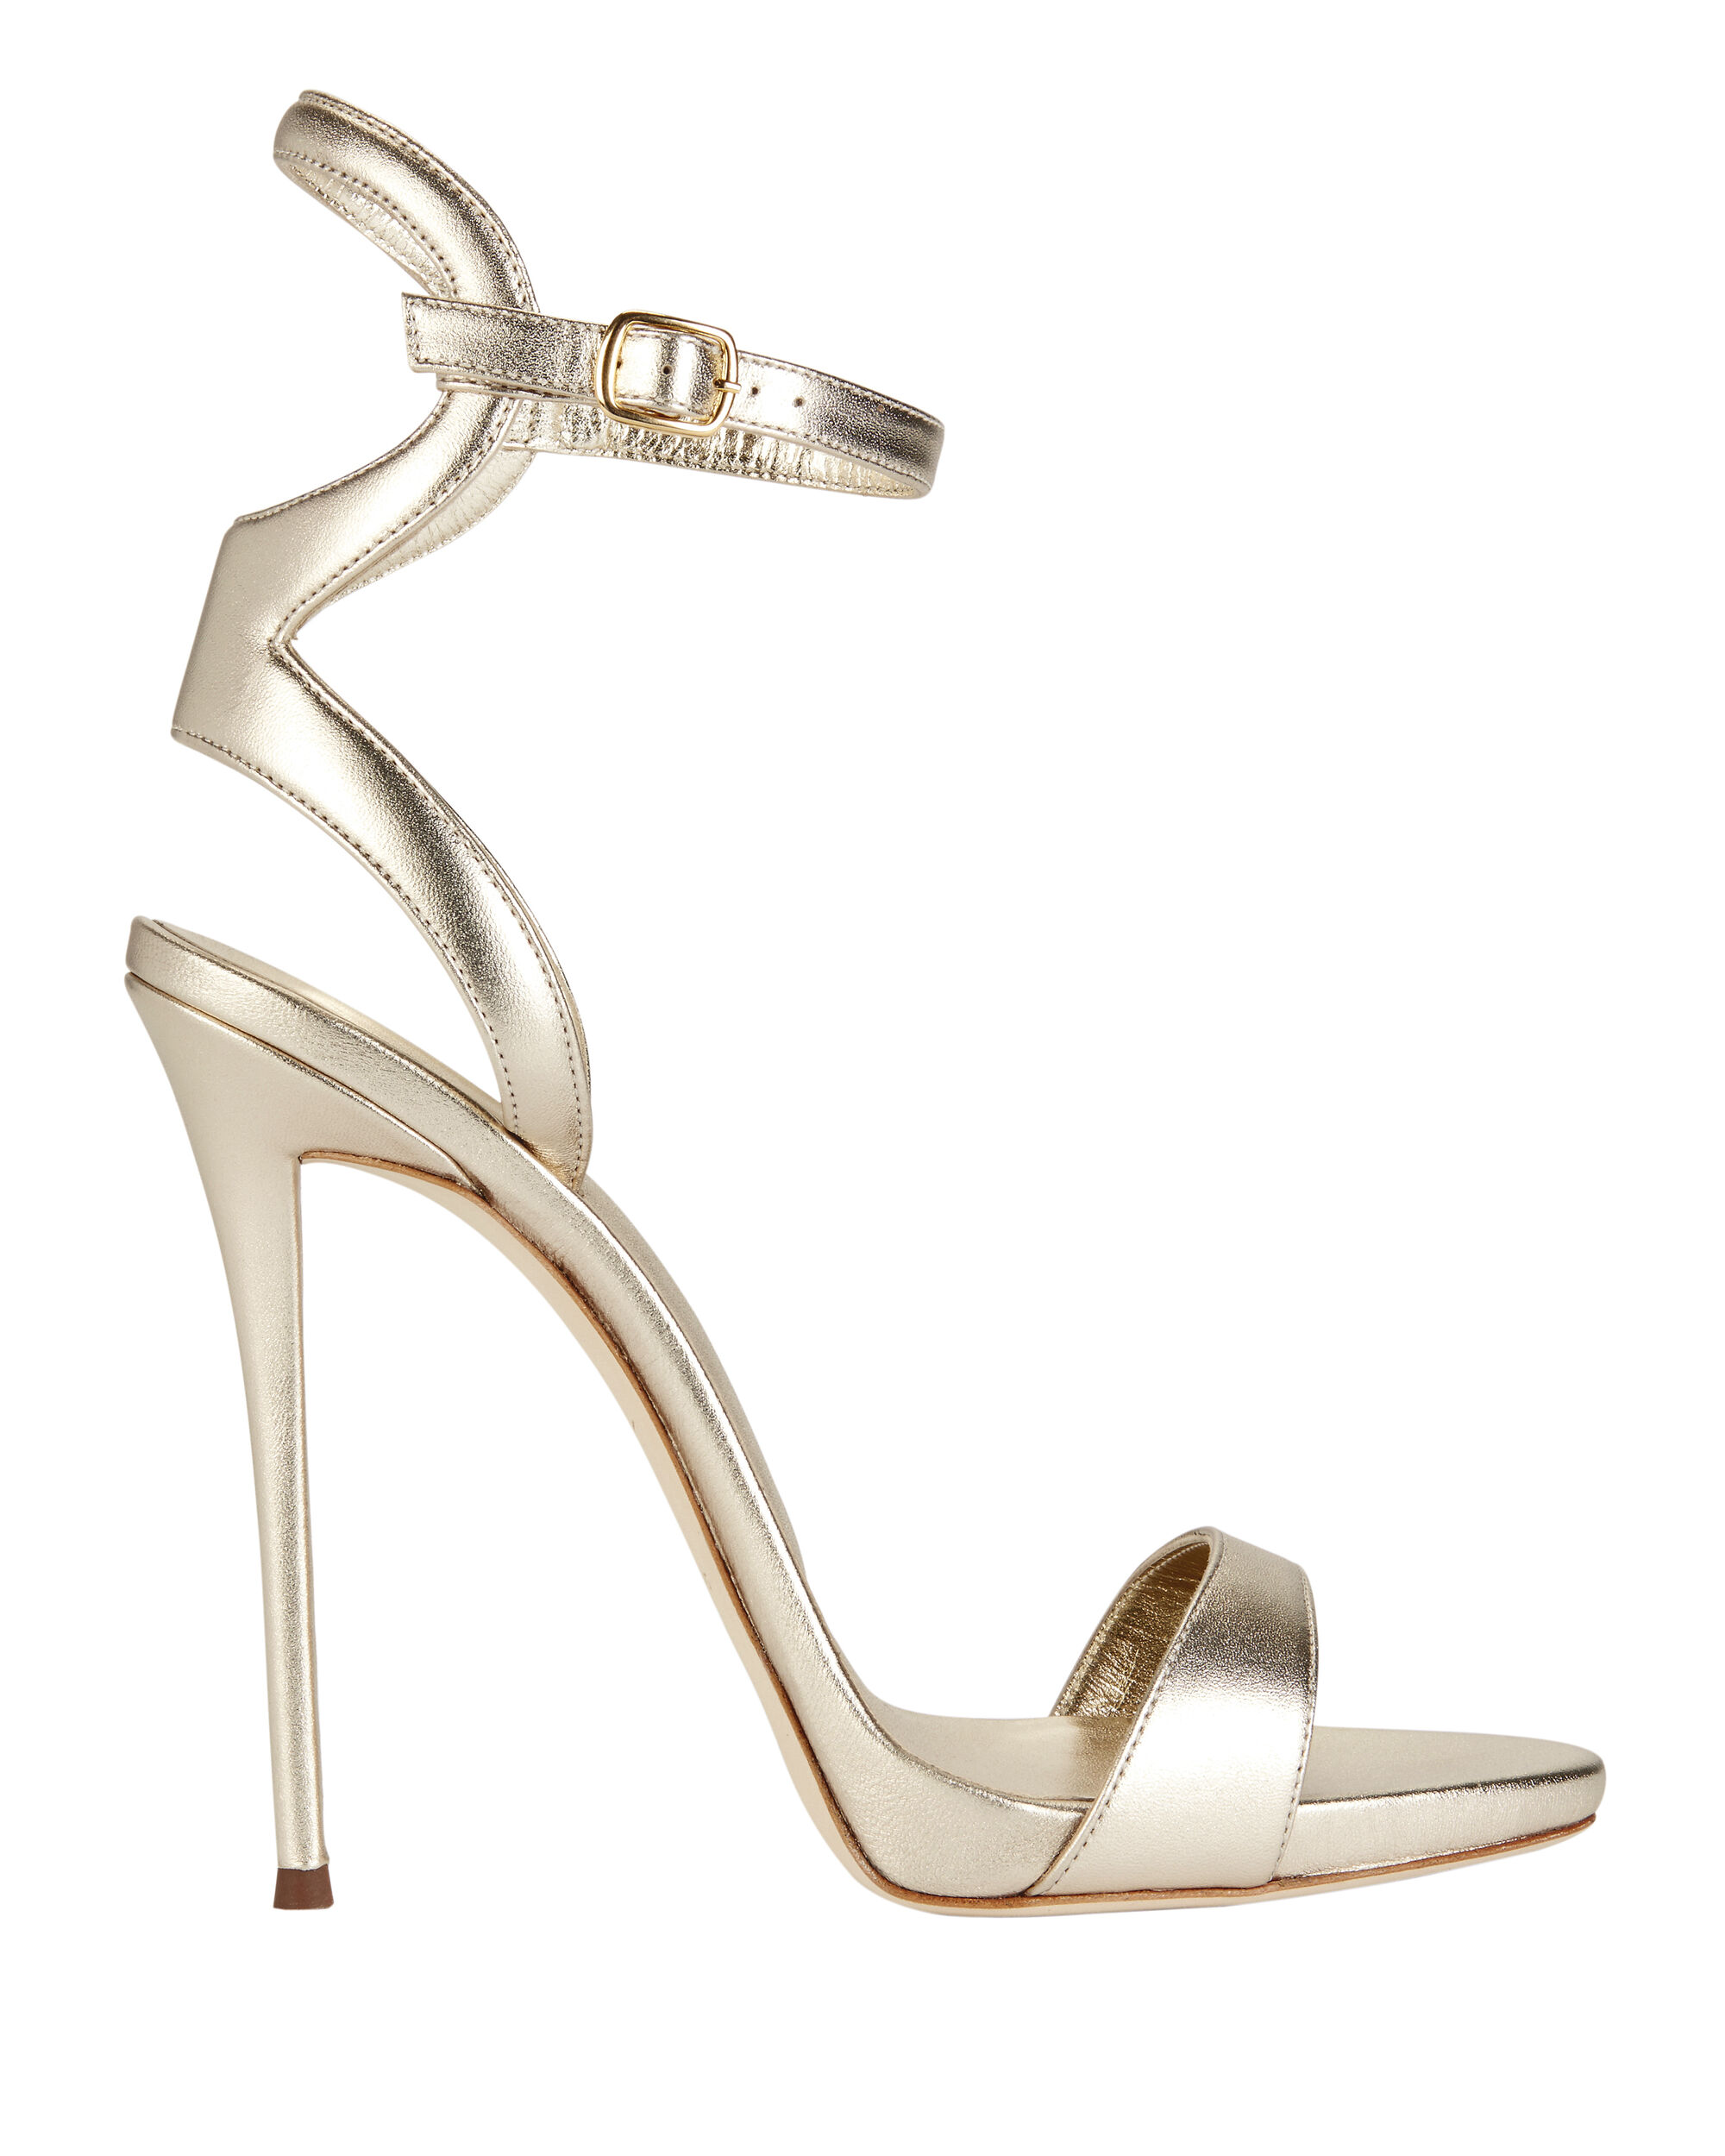 Coline Ankle Strap Metallic Leather Sandals, CHARCOAL, hi-res